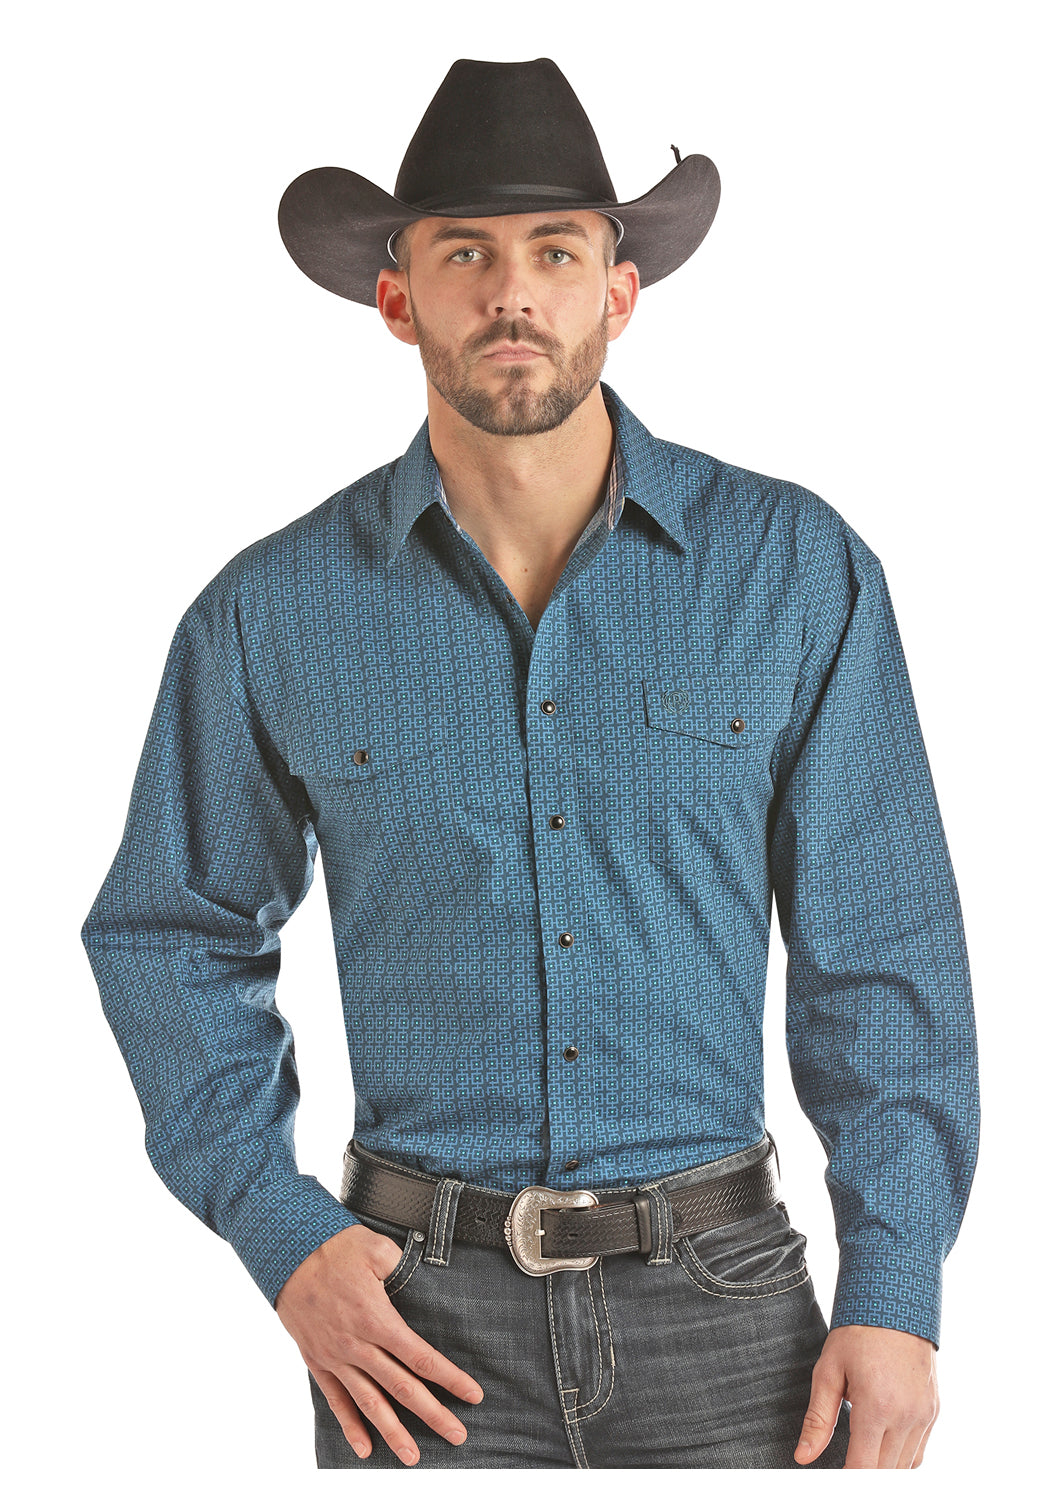 Men's Panhandle Snap Front Shirt #36Y2204 (Tall)